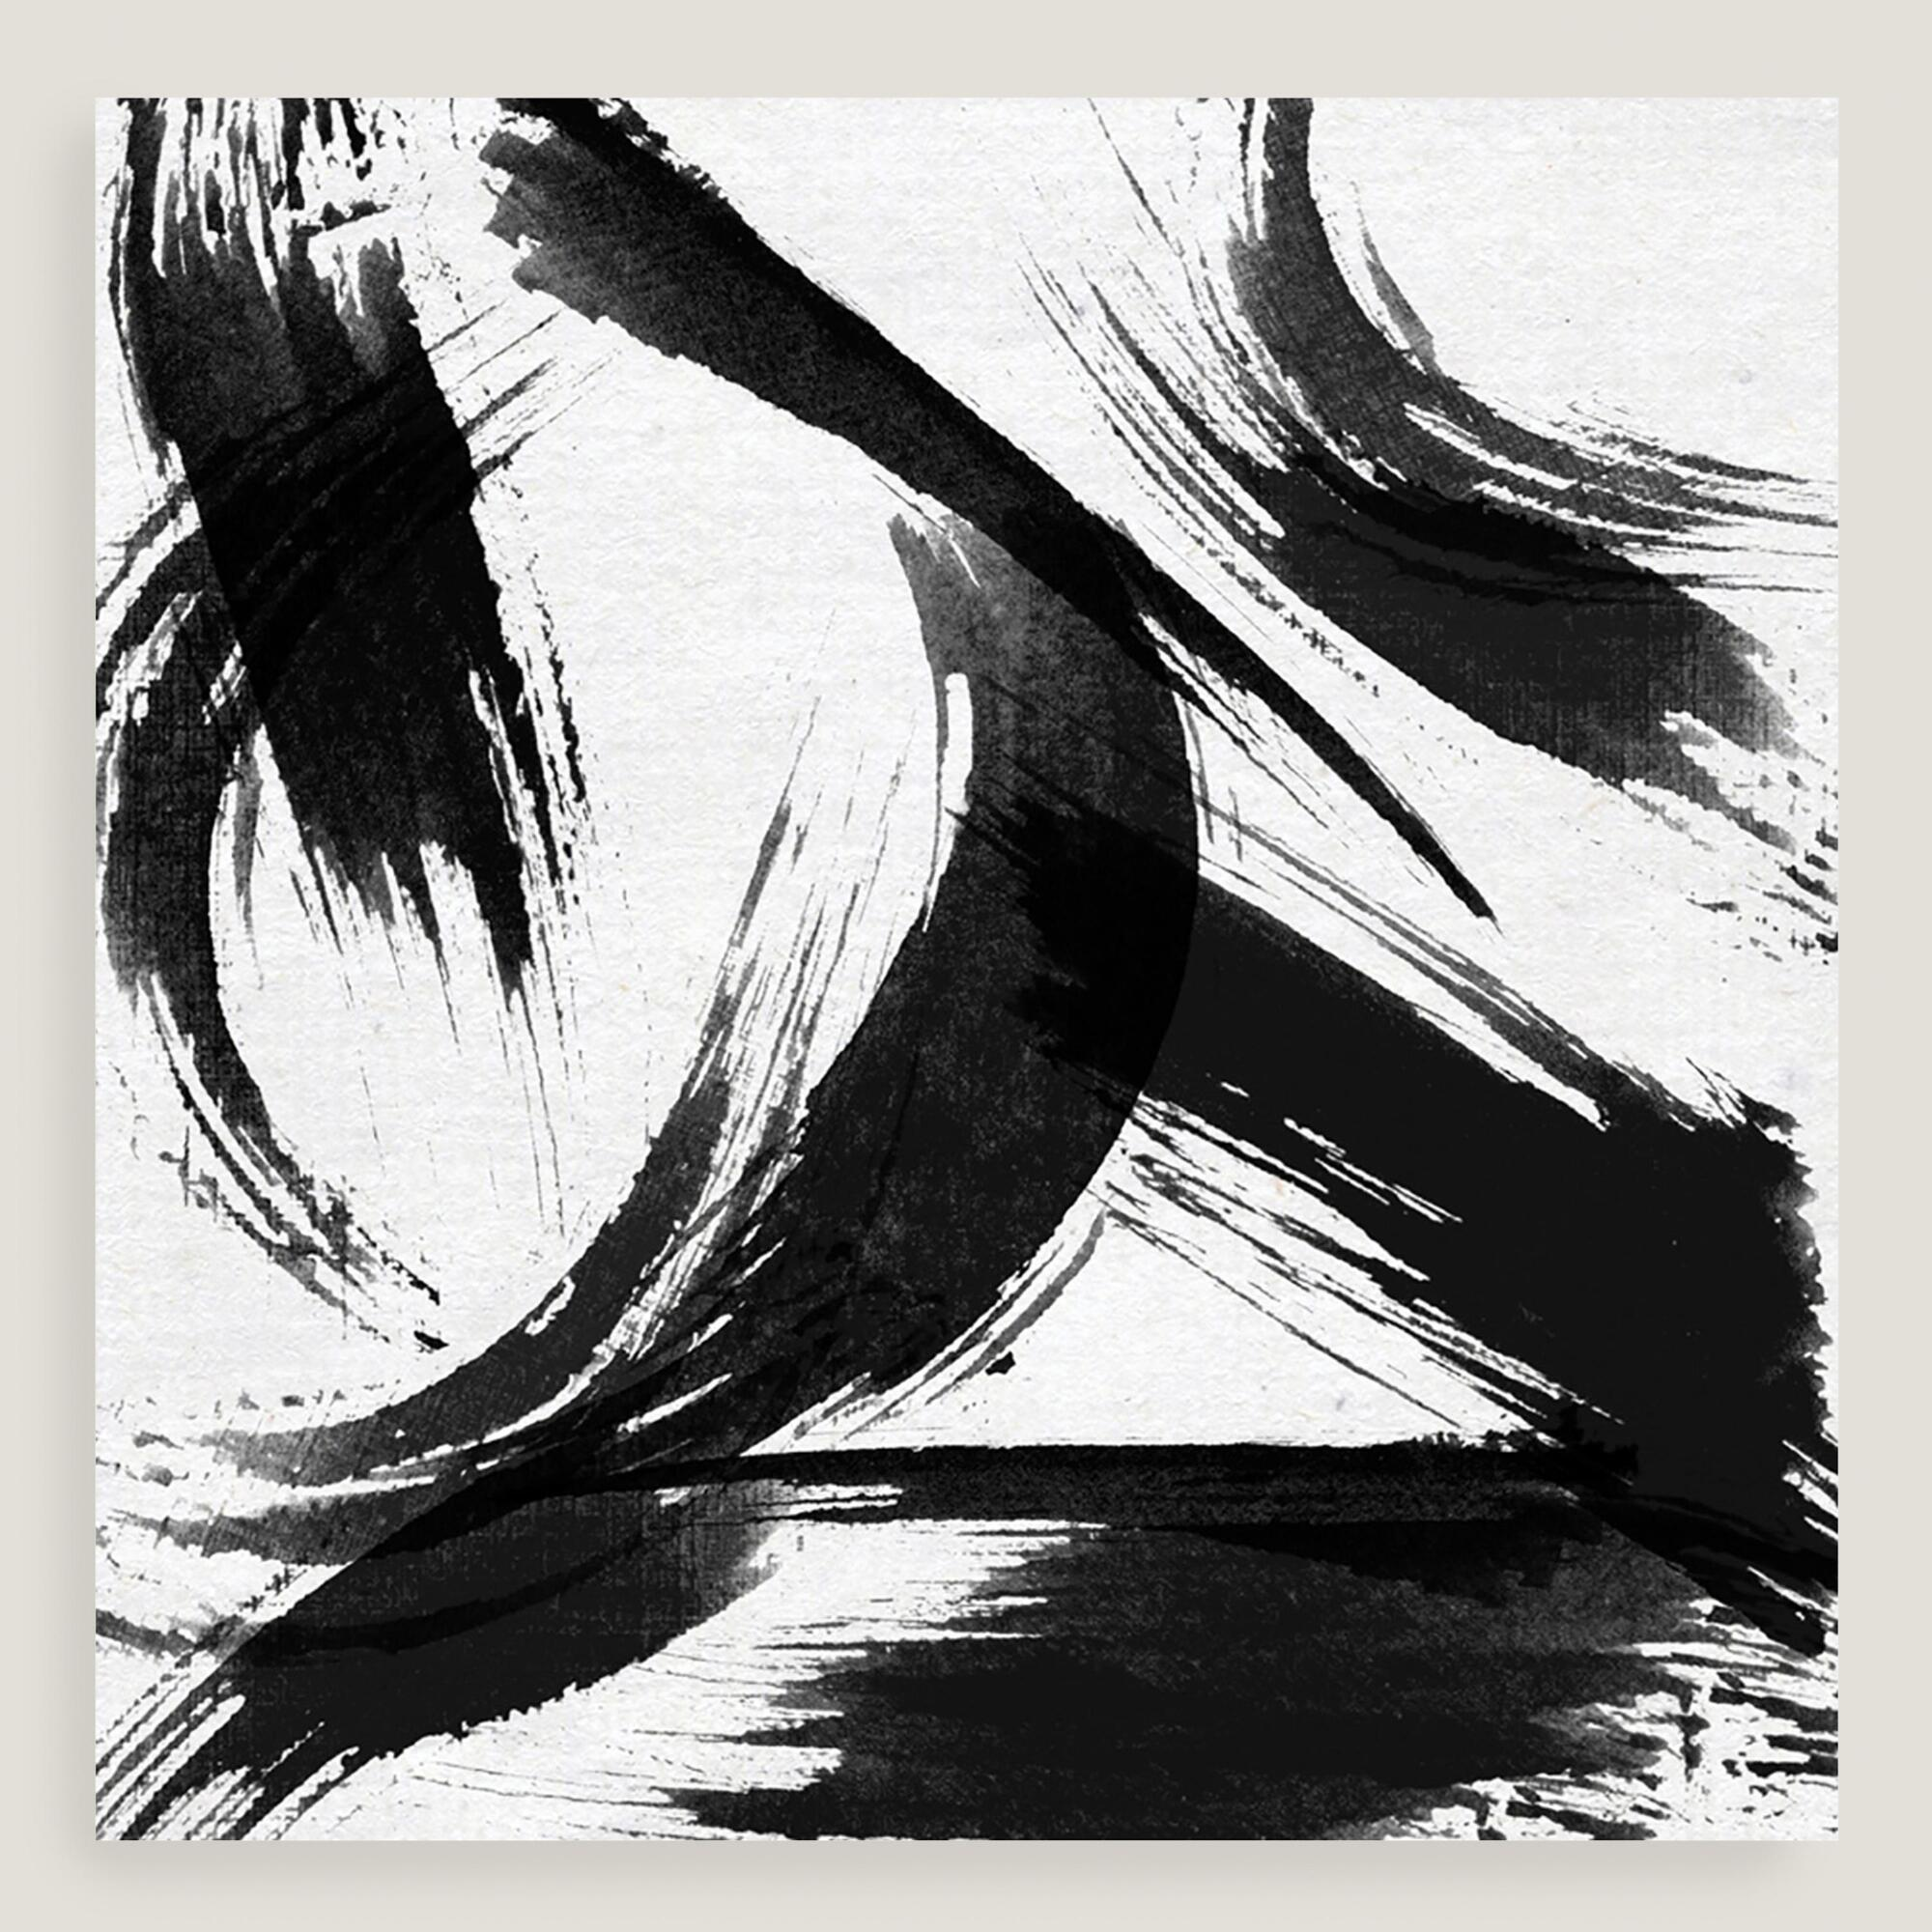 Black and White Abstract Canvas Wall Art   World Market